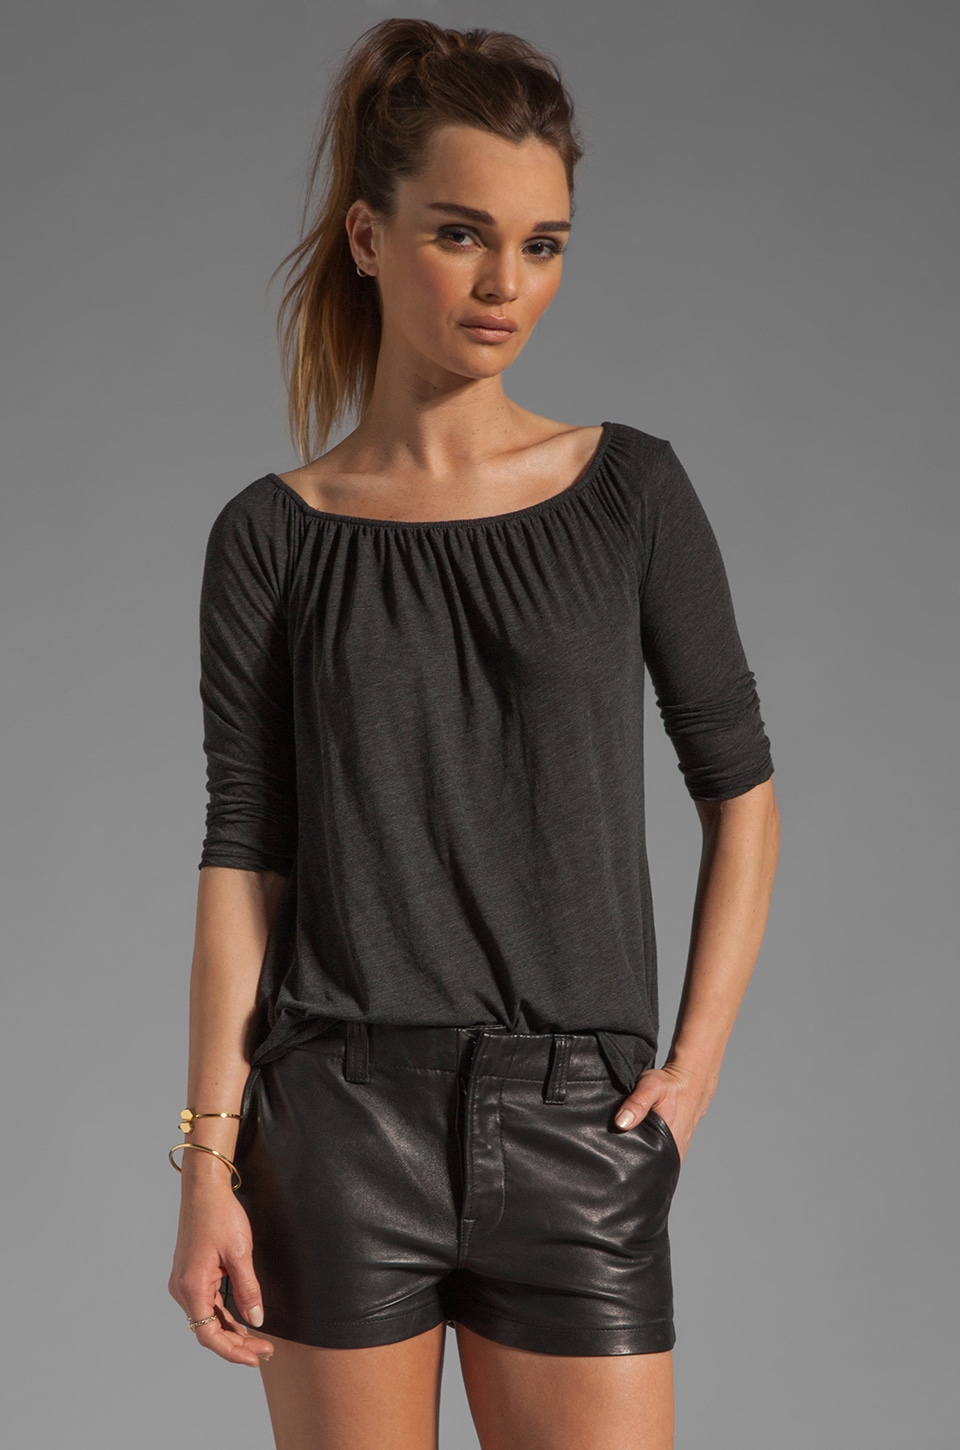 James Perse A Line Off the Shoulder Top in Black